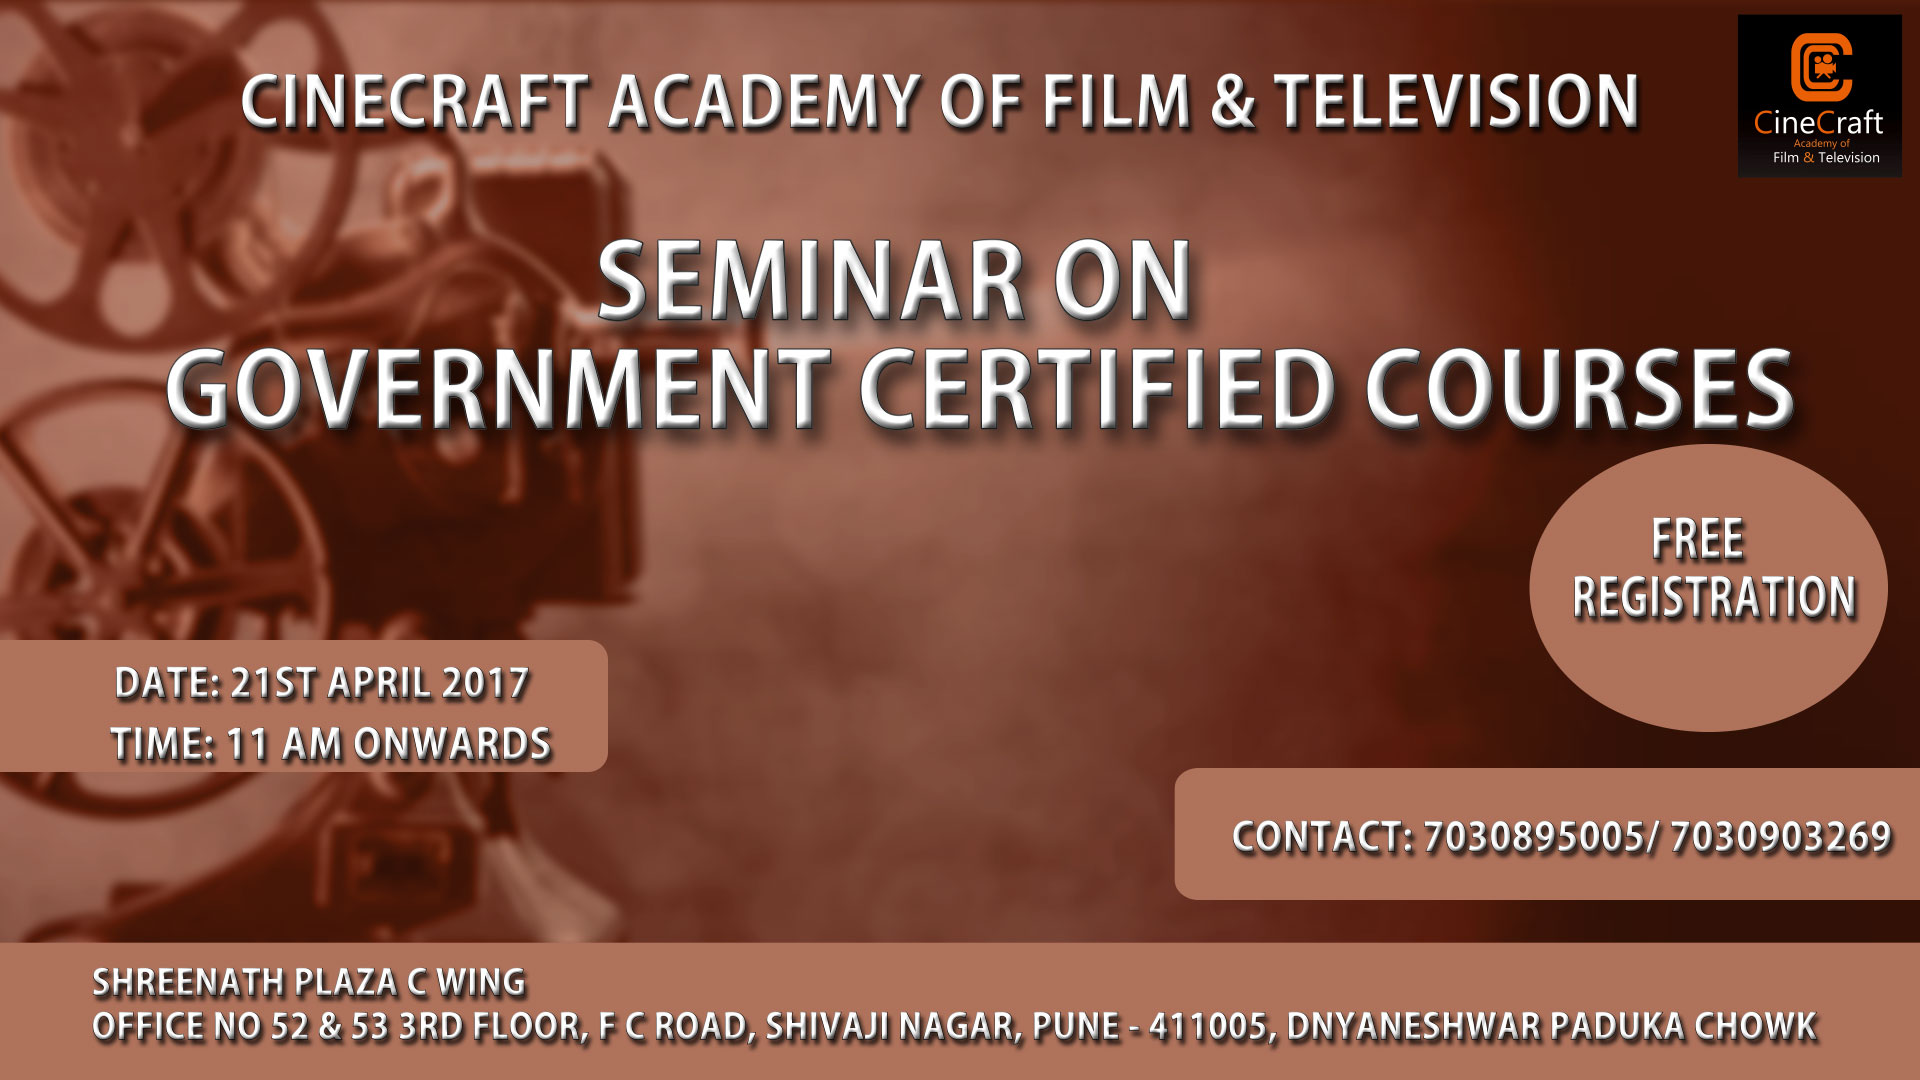 FREE PHOTOGRAPHY SEMINAR ON GOVERNMENT CERTIFIED COURSES